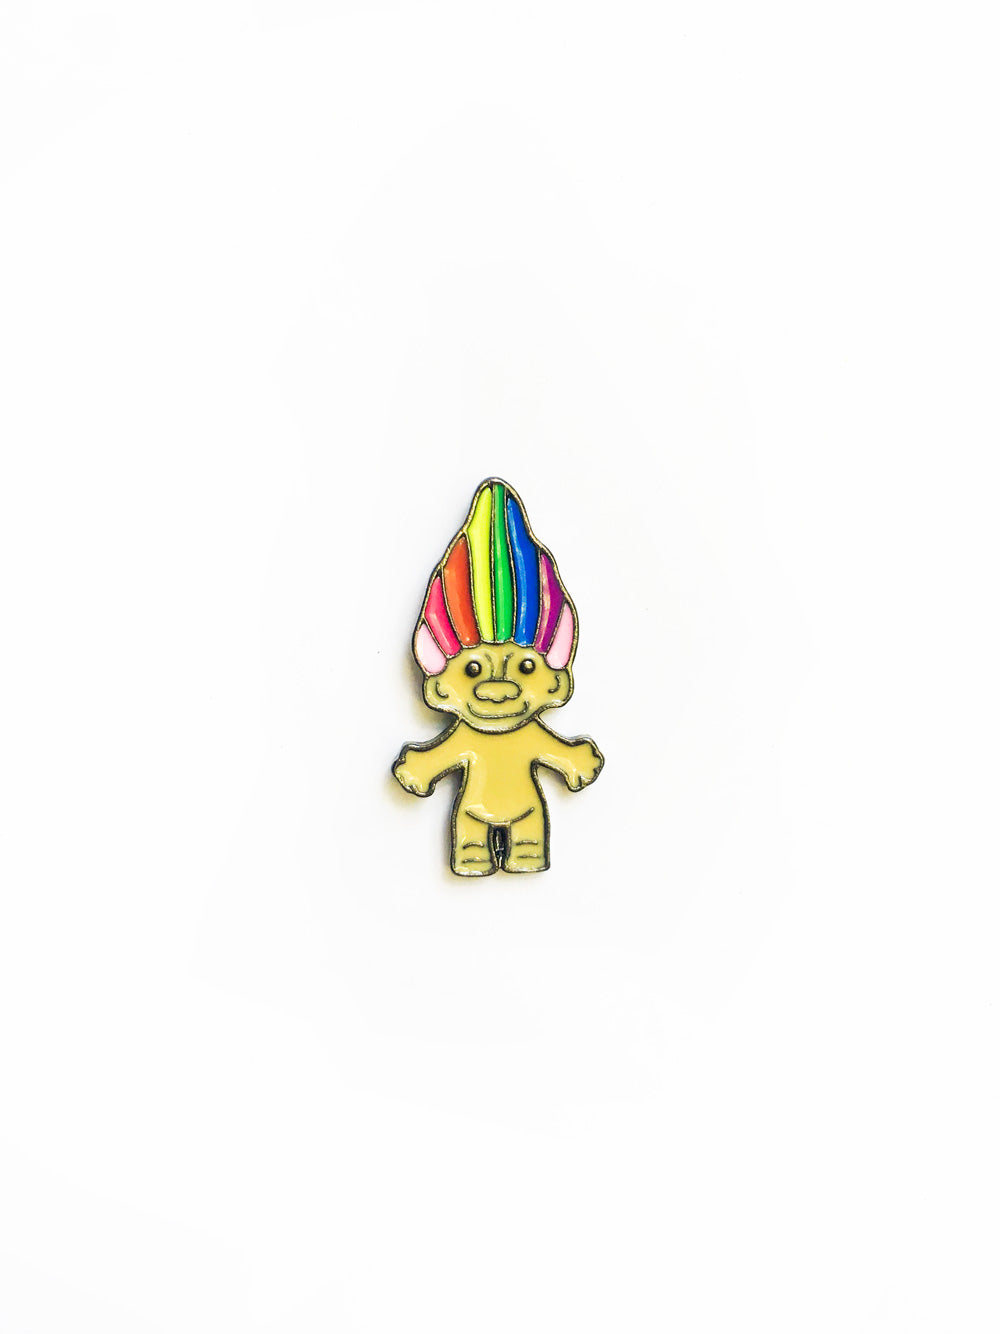 Retro Rainbow Toy Enamel Pin